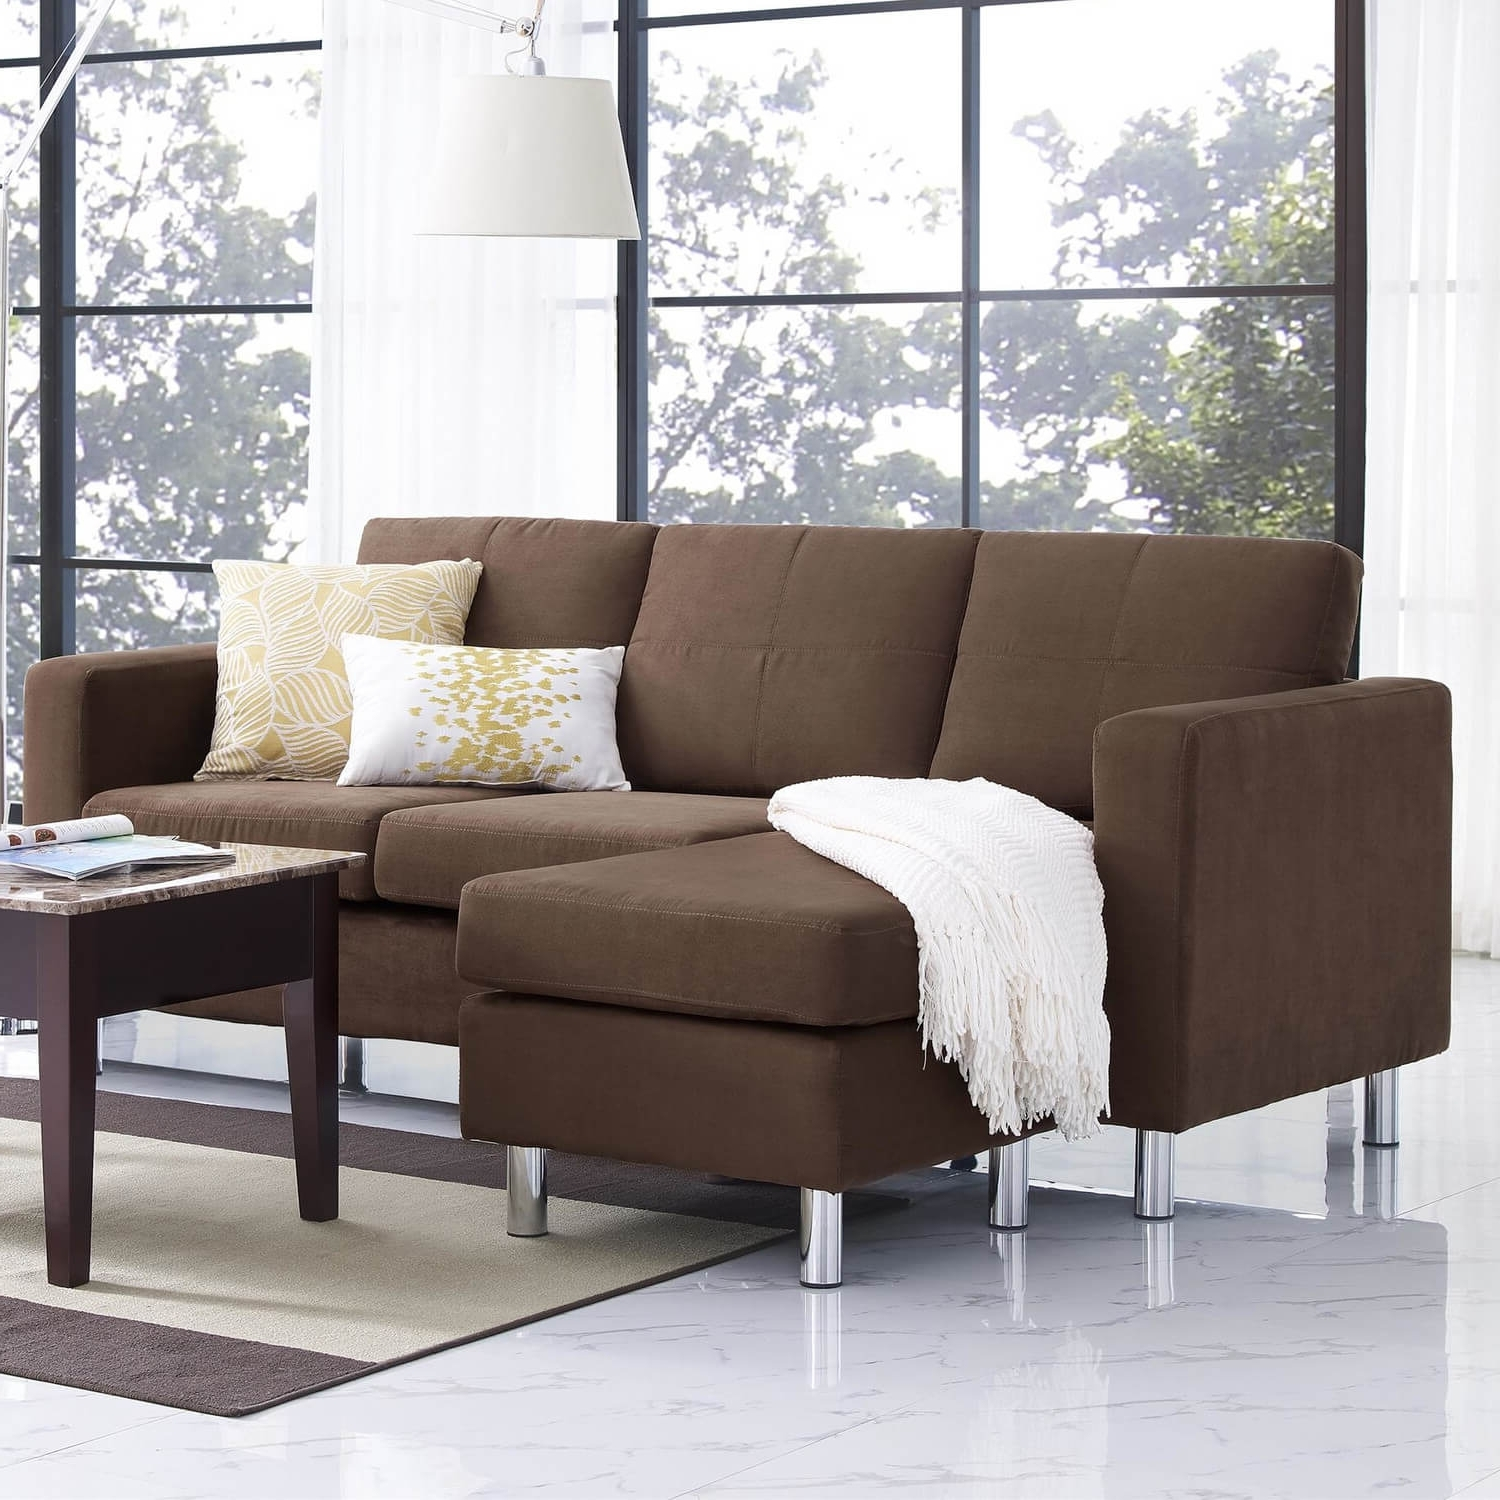 Most Current Sectional Sofas Under 500 Inside 40 Cheap Sectional Sofas Under $500 For  (View 13 of 15)